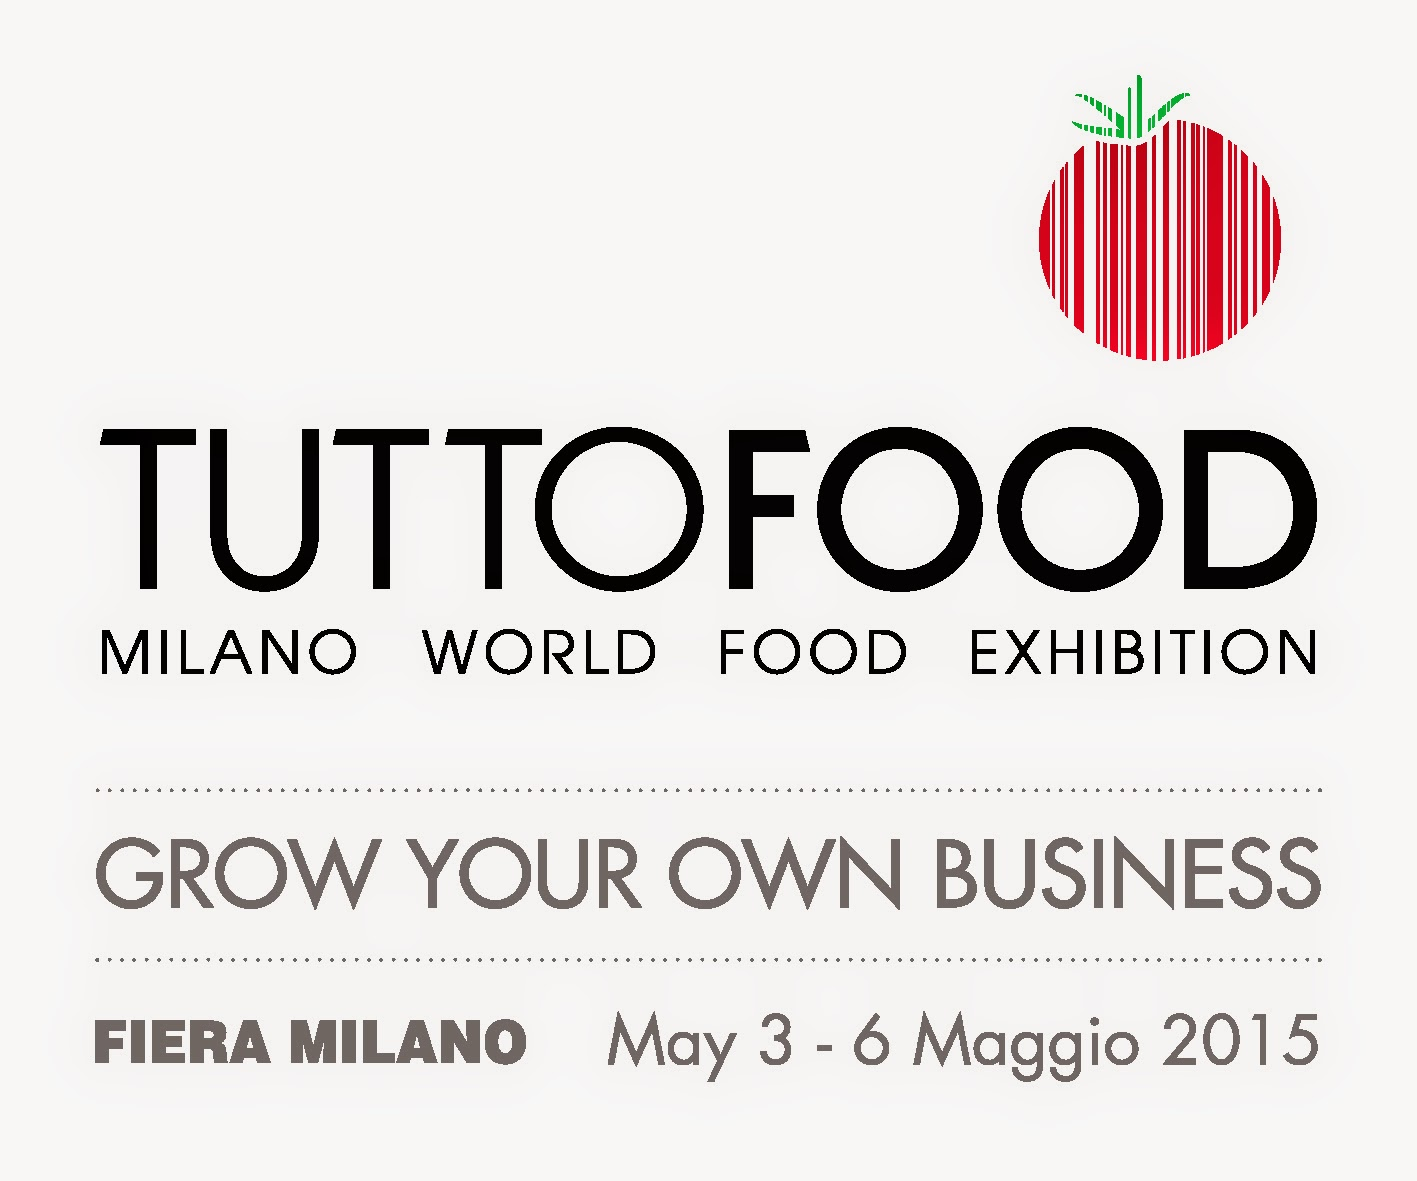 http://www.tuttofood.it/home